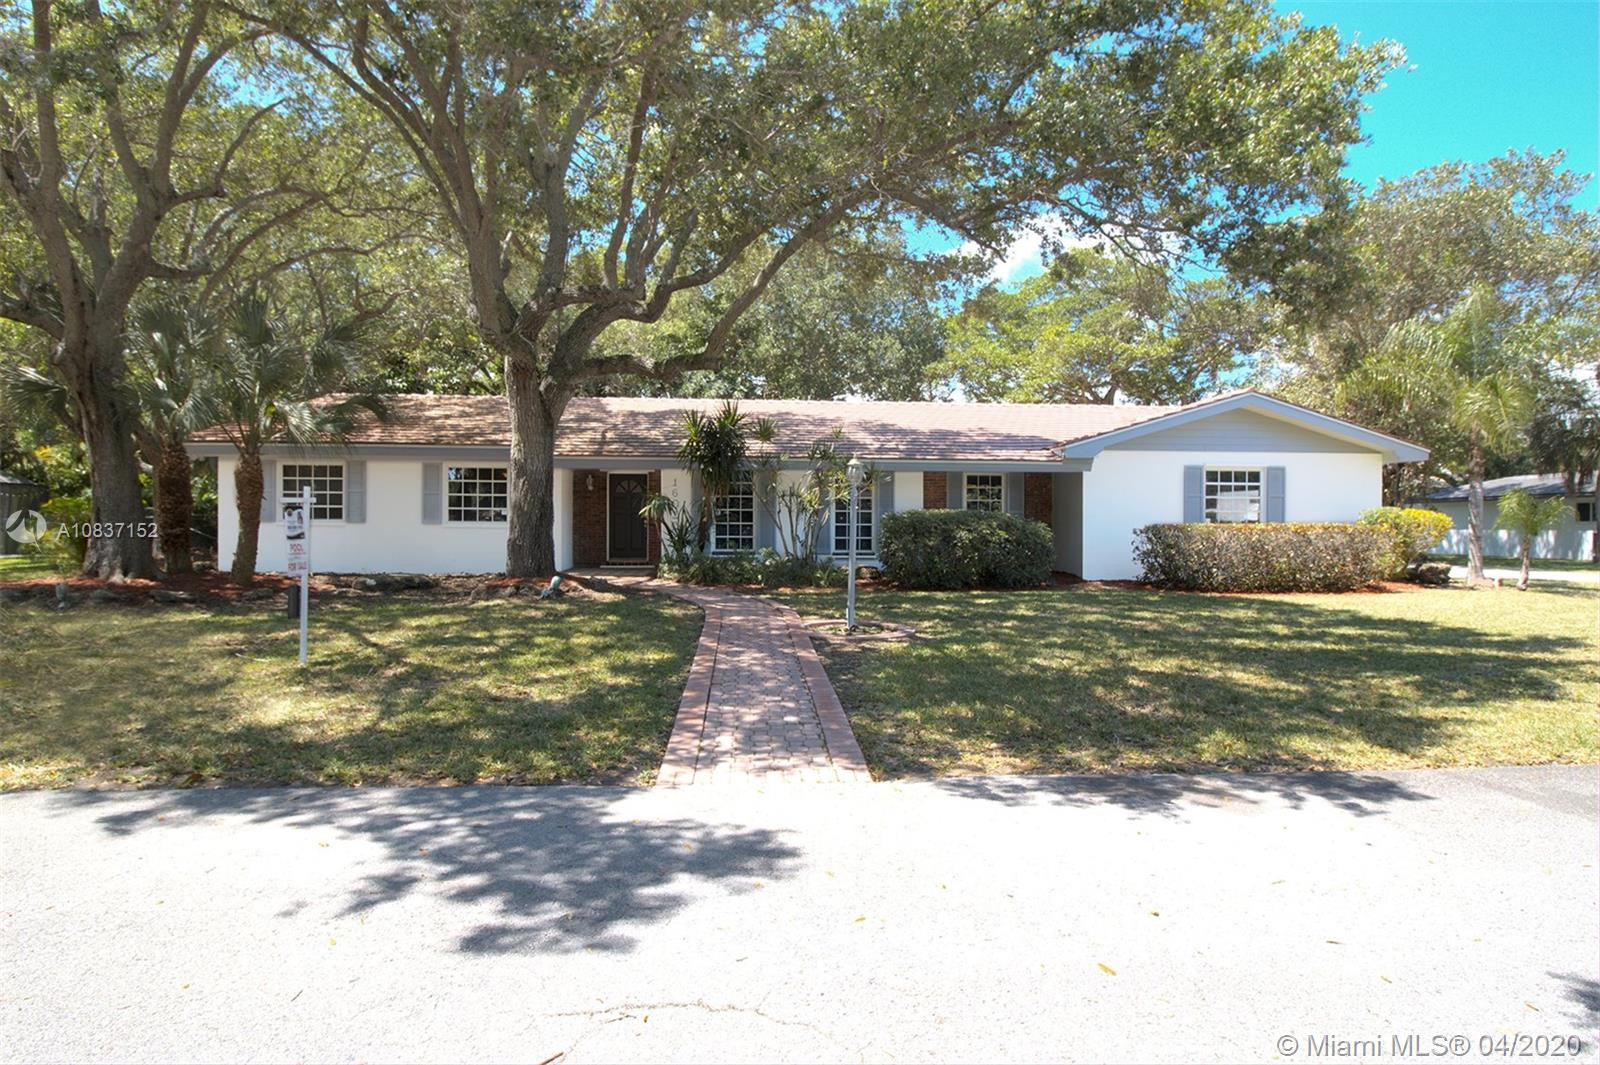 16020 SW 76th Ave, Palmetto Bay, Florida 33157, 4 Bedrooms Bedrooms, ,2 BathroomsBathrooms,Residential,For Sale,16020 SW 76th Ave,A10837152